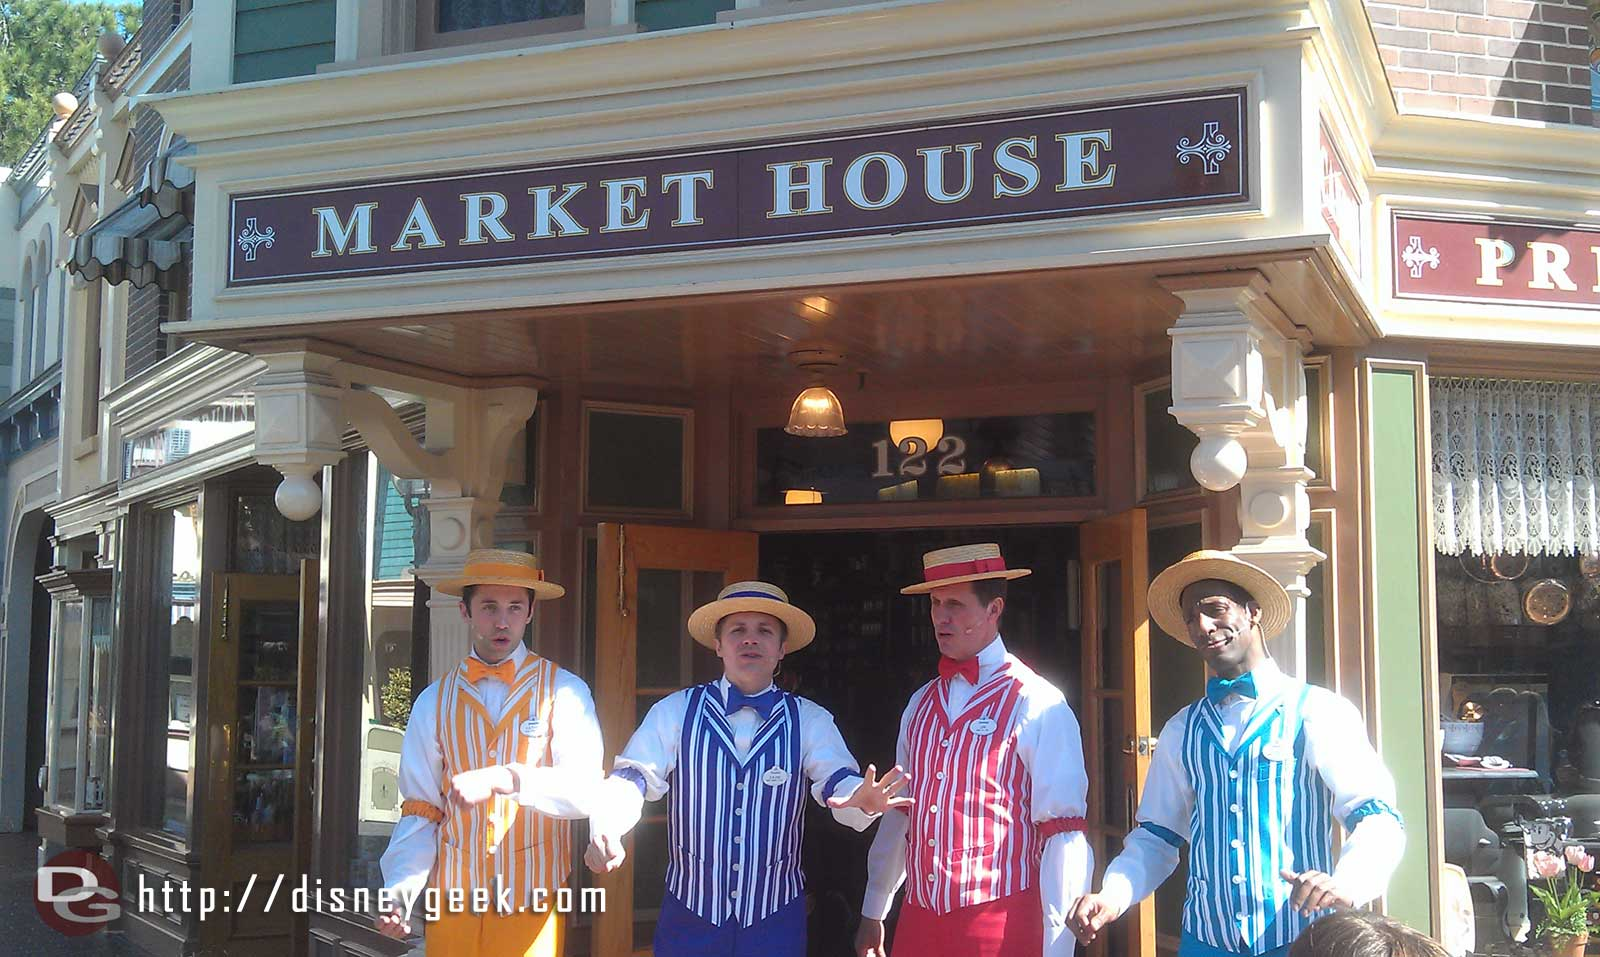 The Dapper Dans of #Disneyland performing on Main Street in front of the Market House